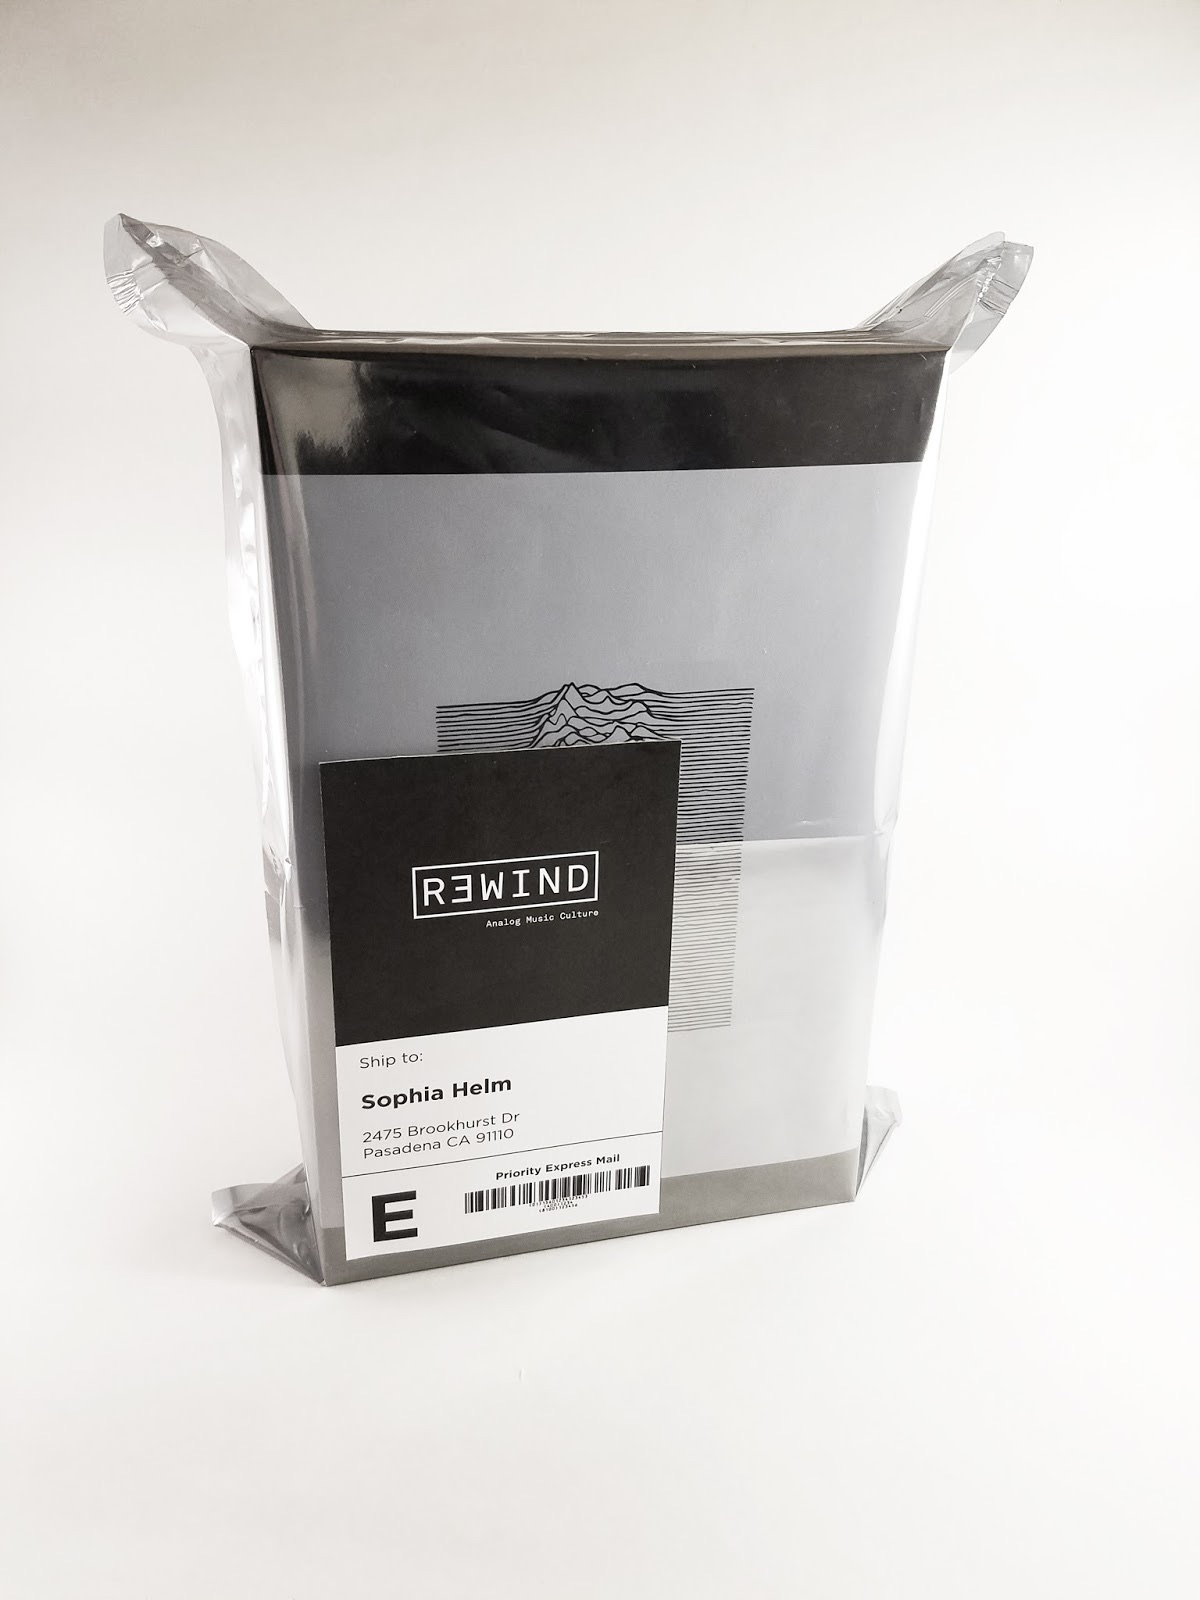 Shipping bag with rewind subscription box packaging.